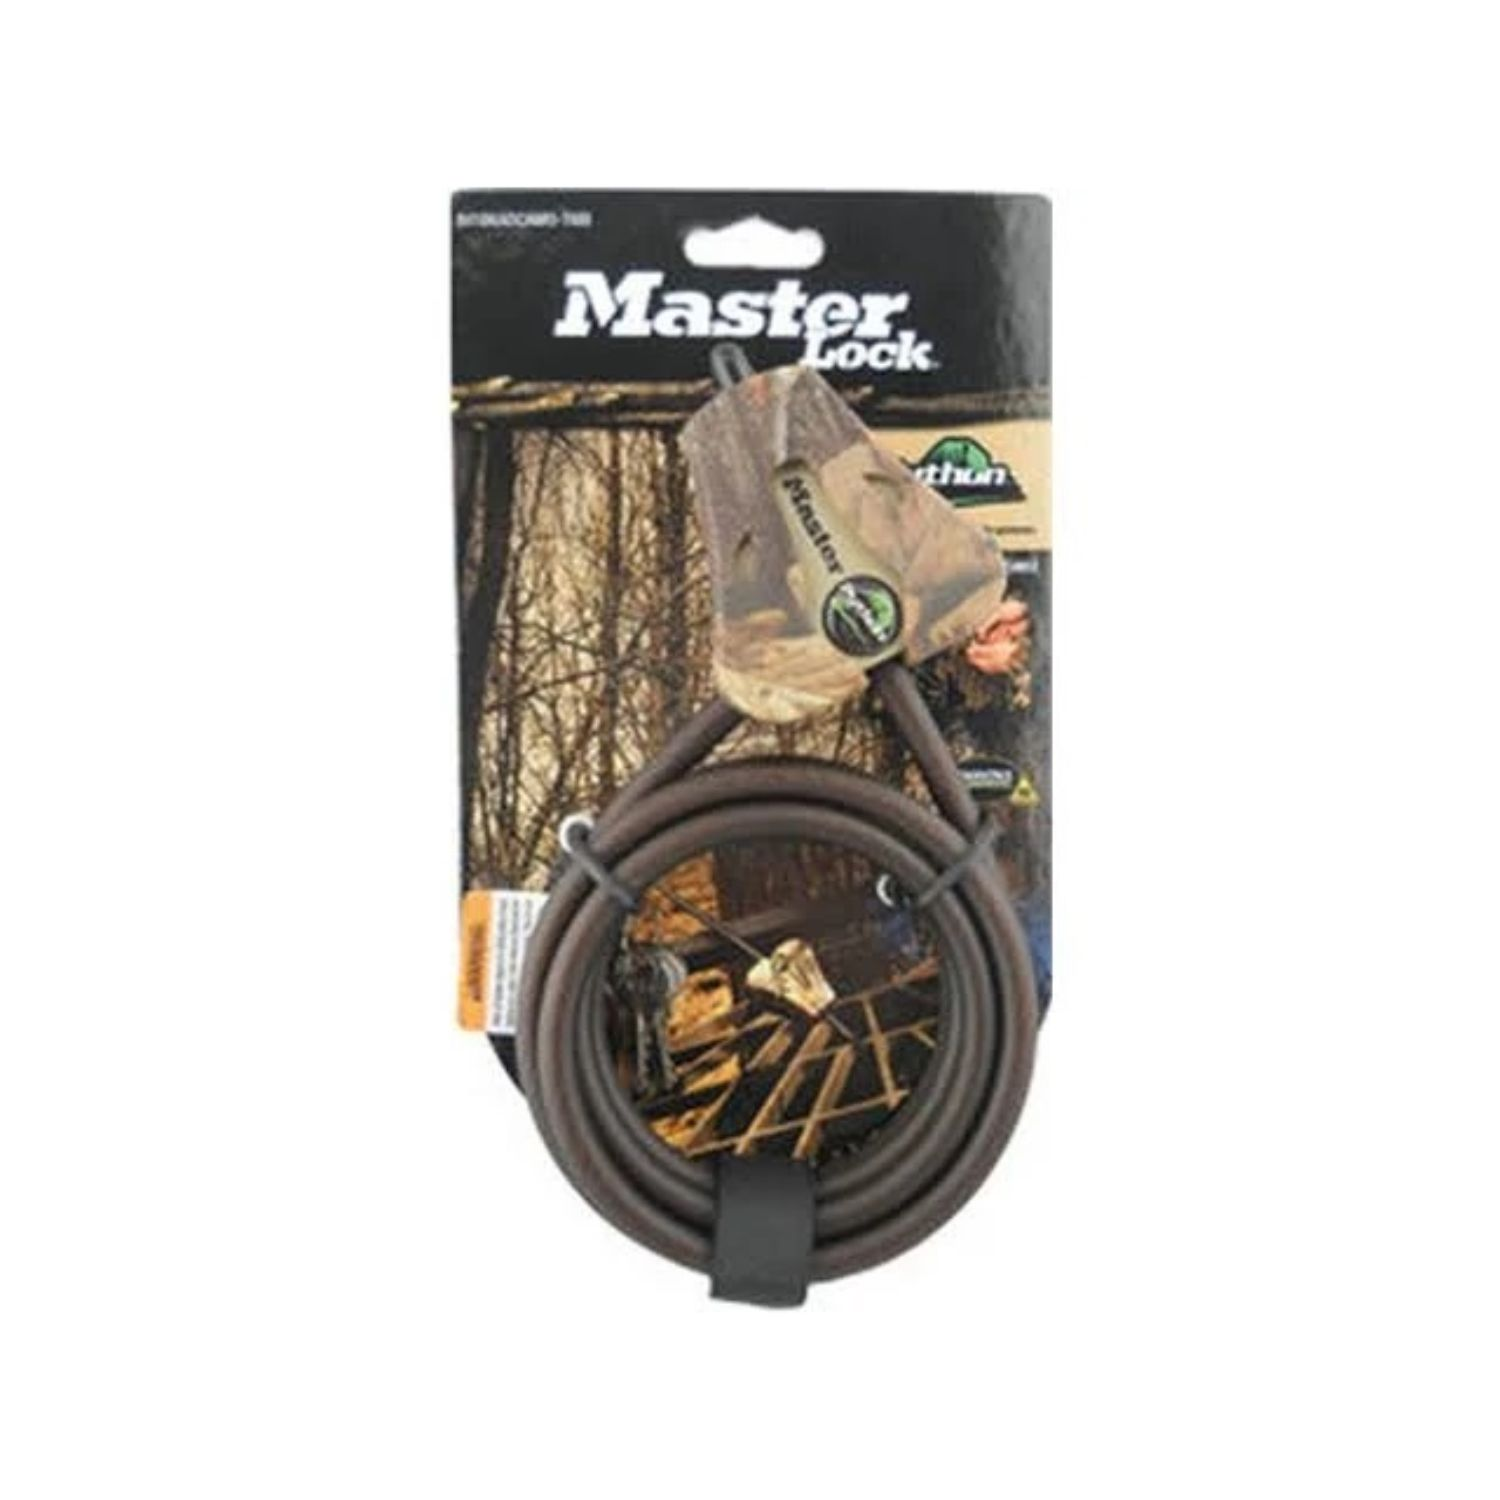 Covert 0.3125 in Master Lock Security Cable Camo